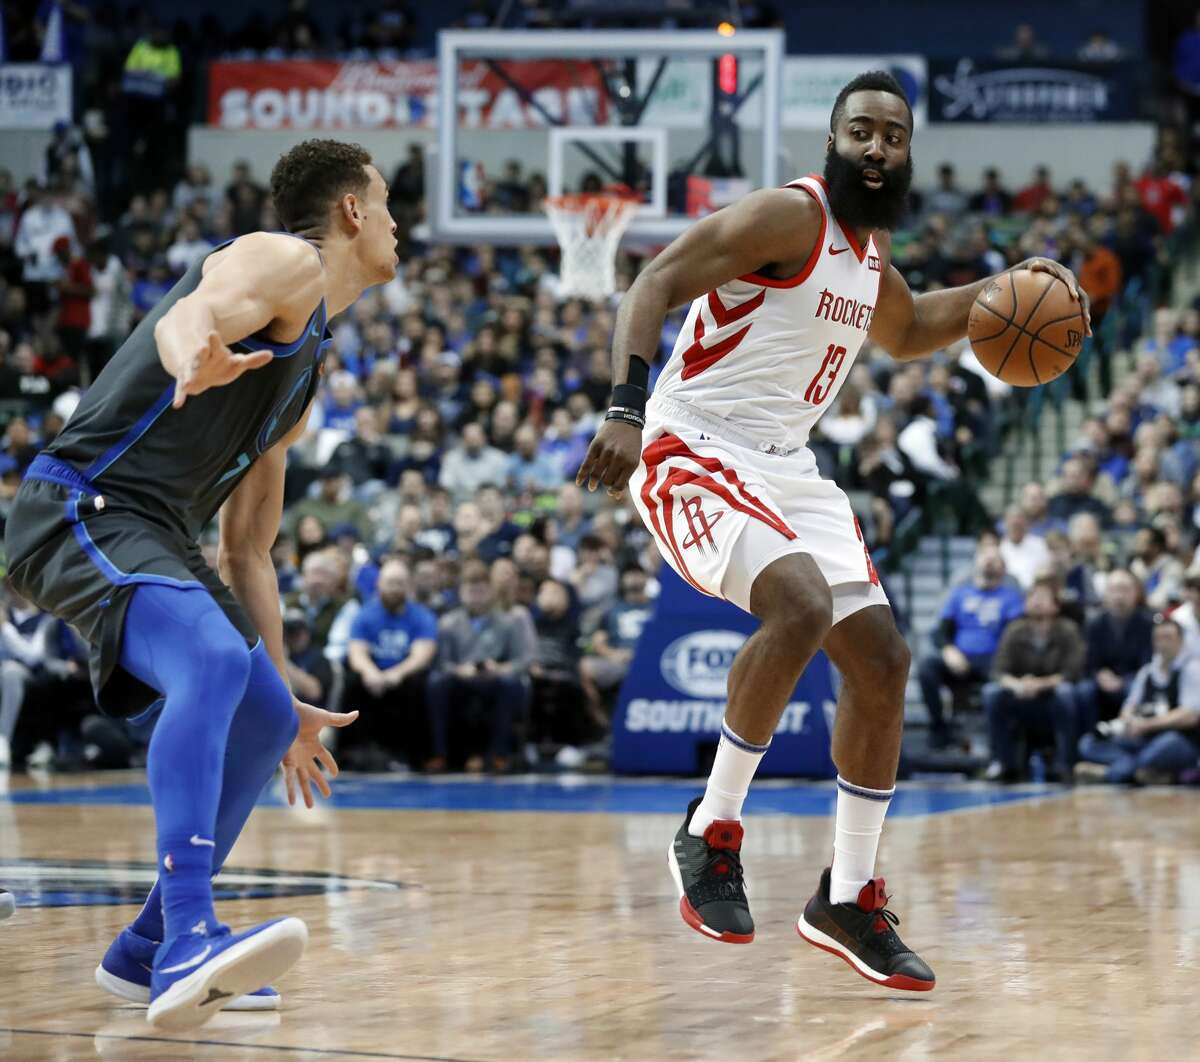 Dallas Mavericks' Dwight Powell, left, defends as Houston Rockets guard James Harden (13) handles the ball in the first half of an NBA basketball game in Dallas, Sunday, March 10, 2019. (AP Photo/Tony Gutierrez)